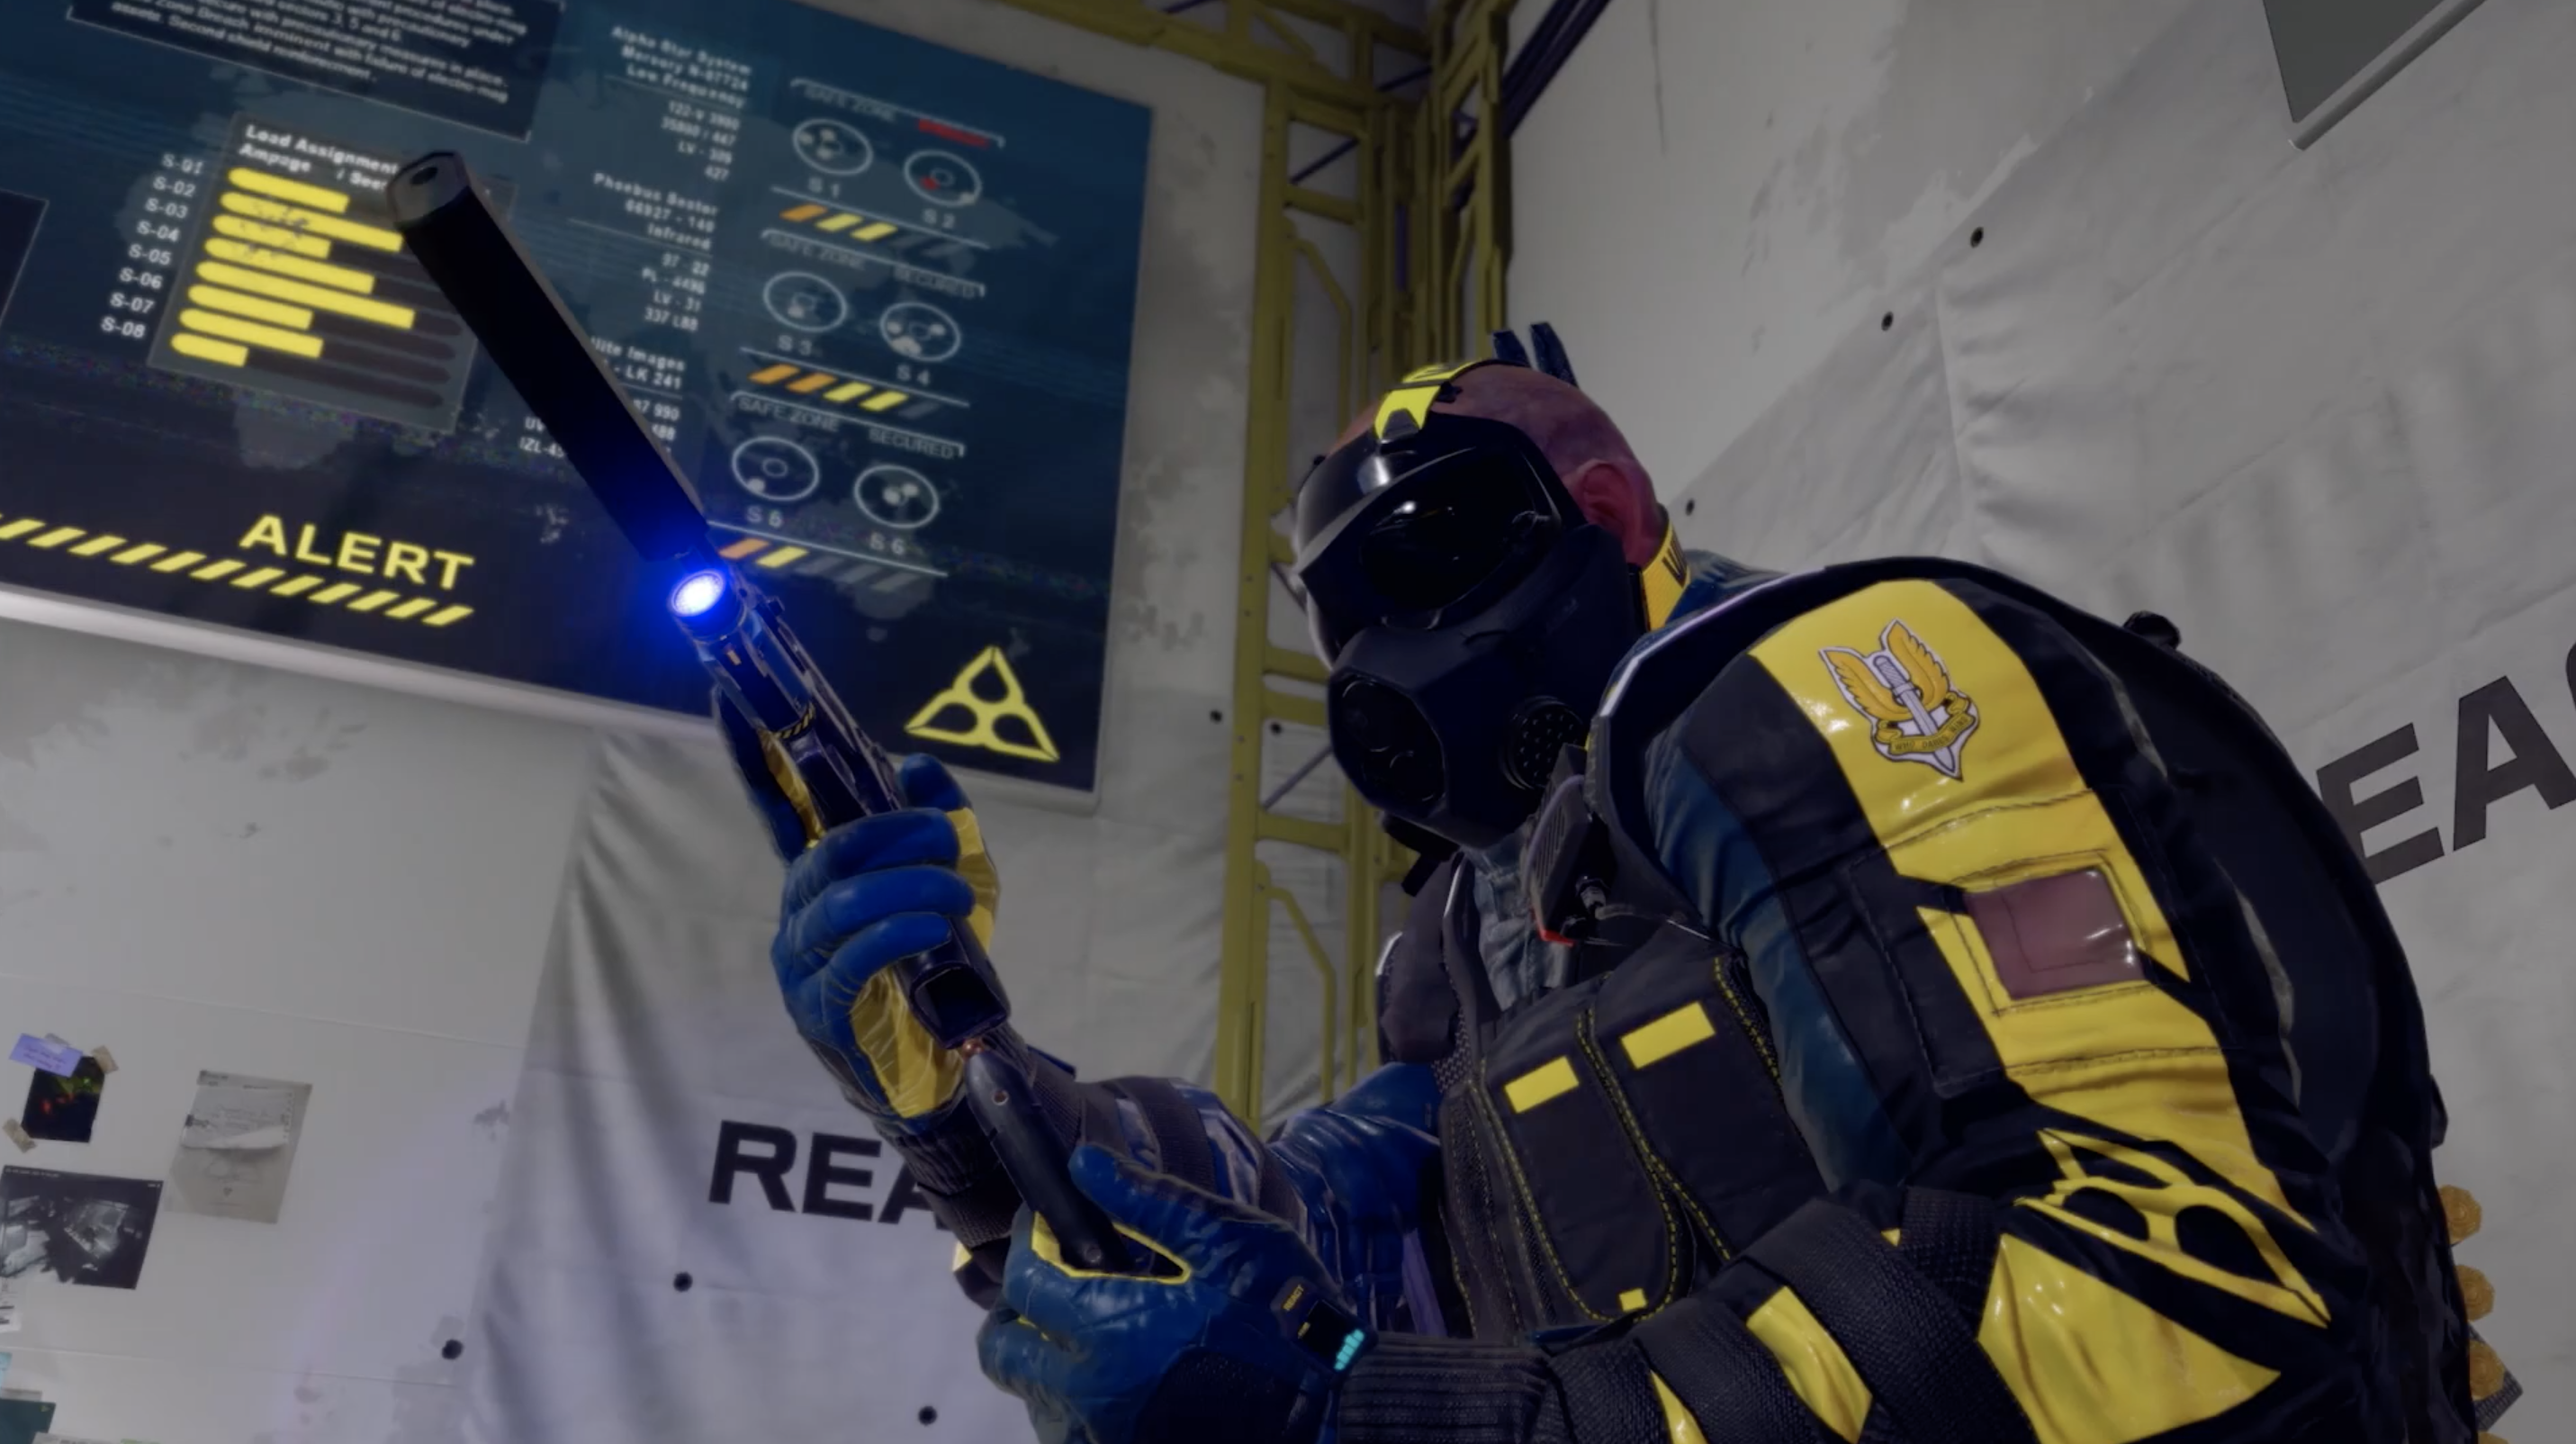 E3 2021: 7 Minutes of Tom Clancy's Rainbow Six Extraction